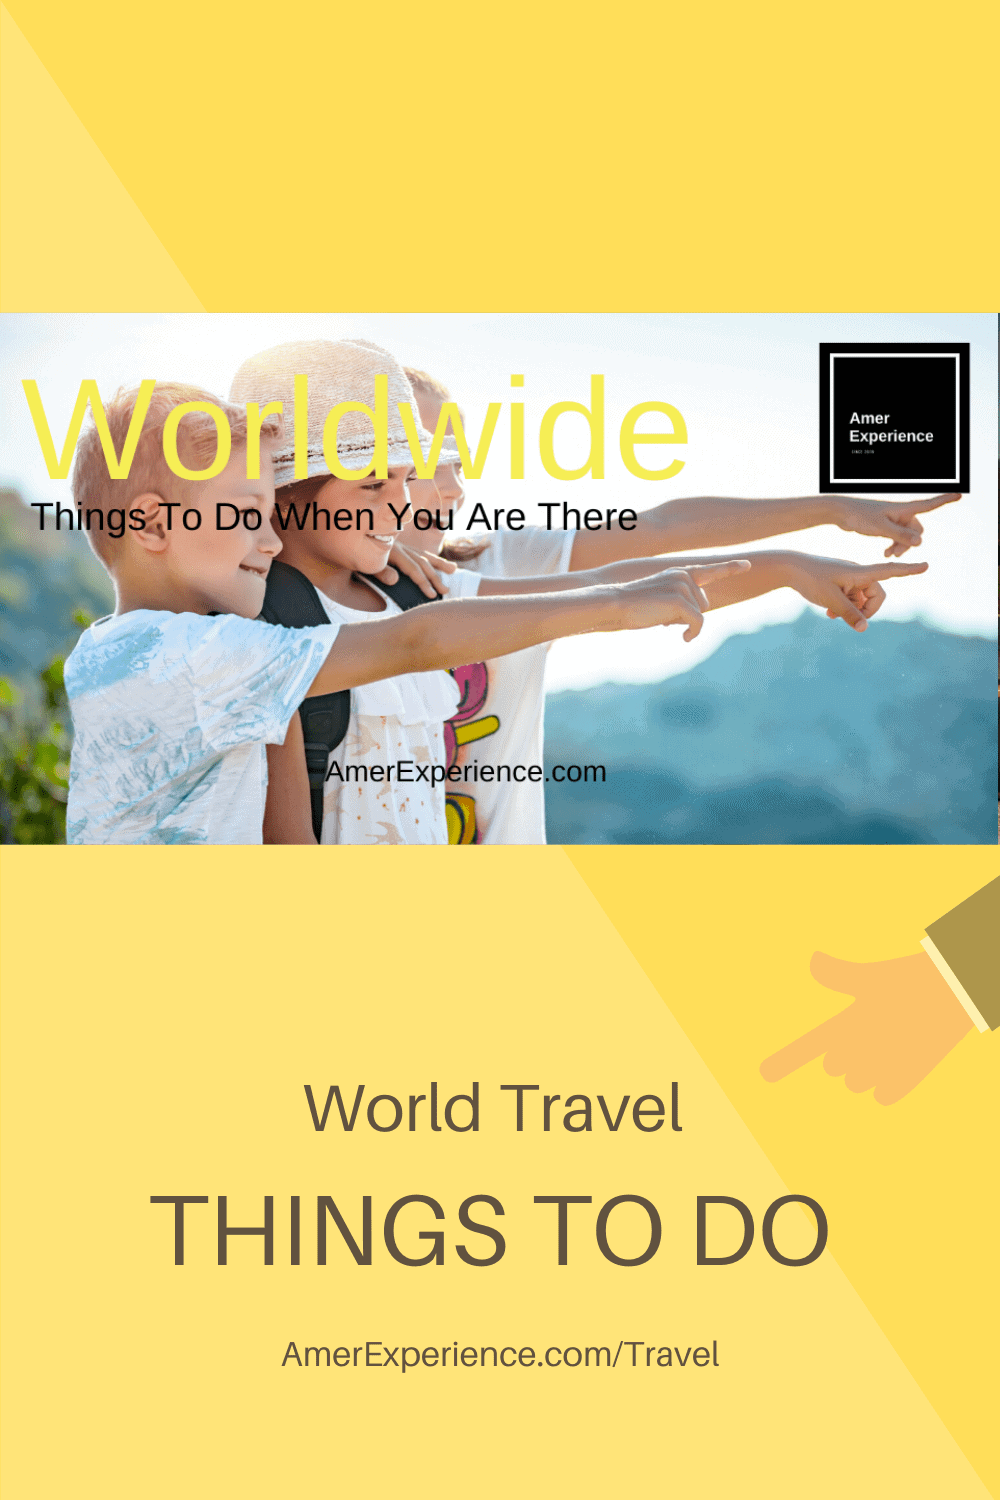 Travel things to do worldwide